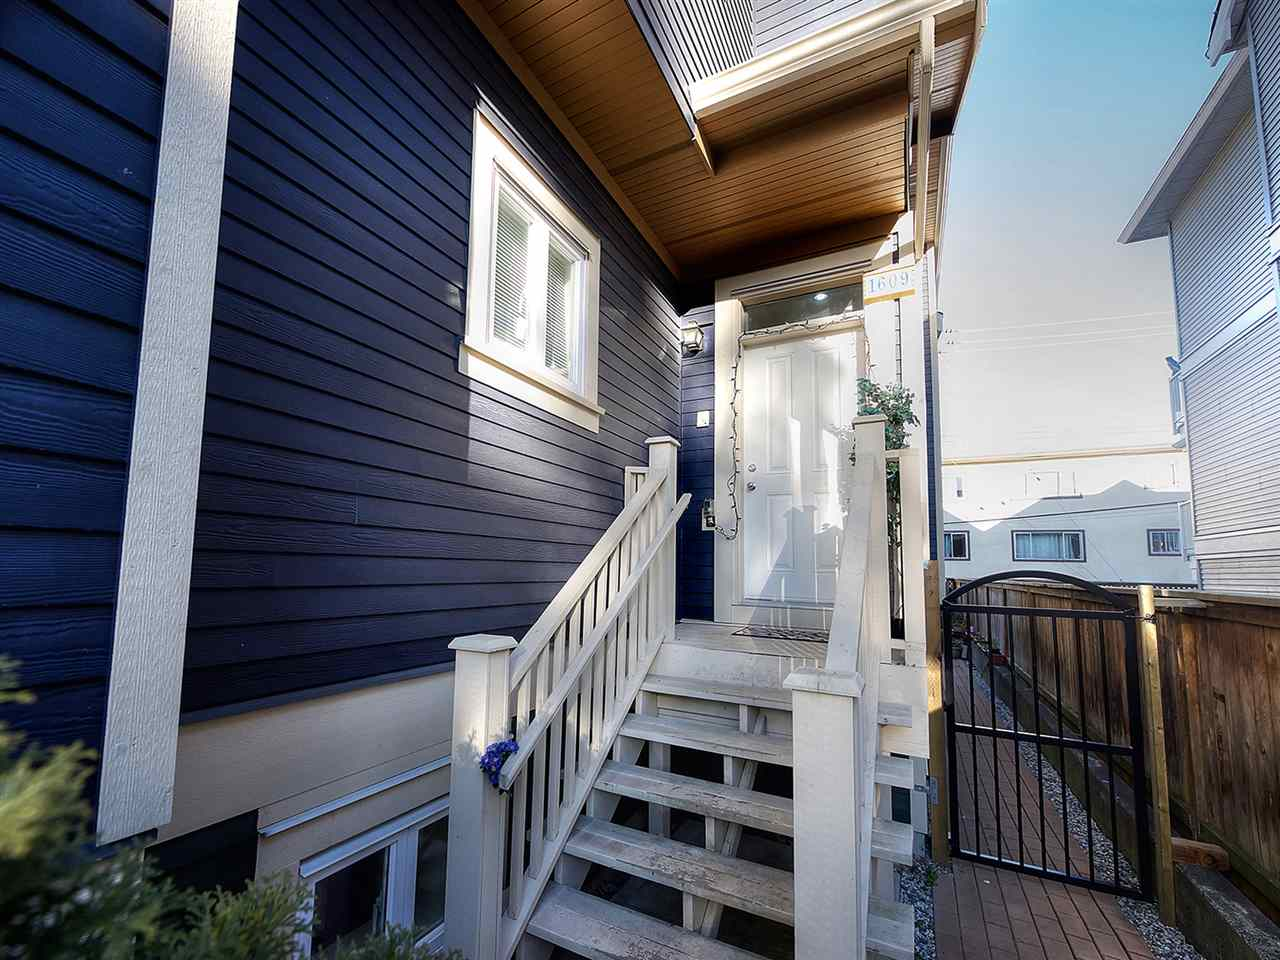 Main Photo: 1609 FRANCES STREET in Vancouver: Hastings House 1/2 Duplex for sale (Vancouver East)  : MLS® # R2131404